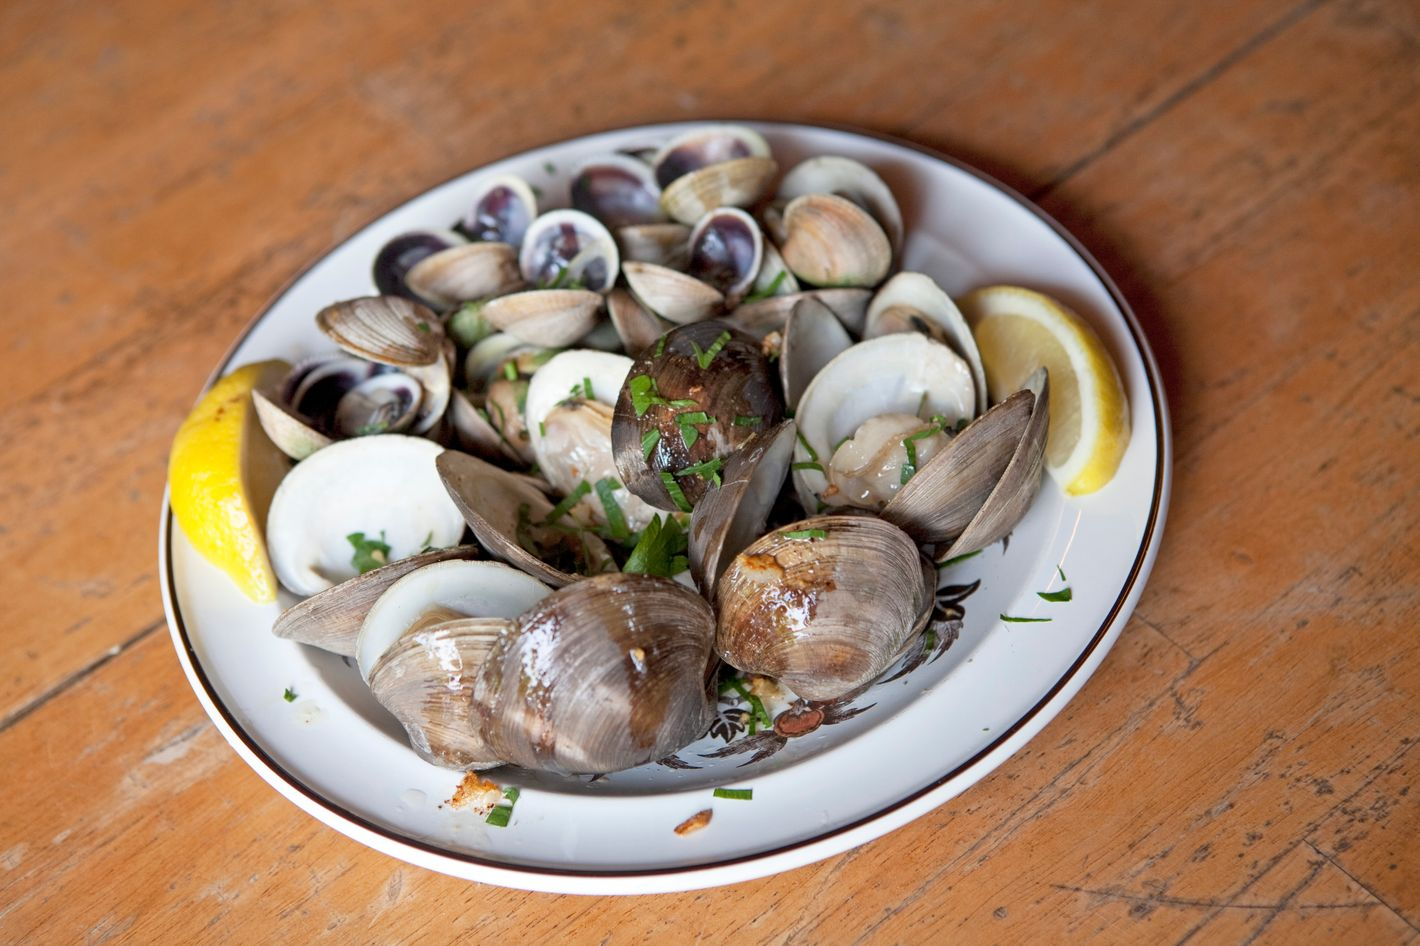 http://pixel.nymag.com/imgs/daily/grub/2011/06/01/01_stanselmclams.jpg